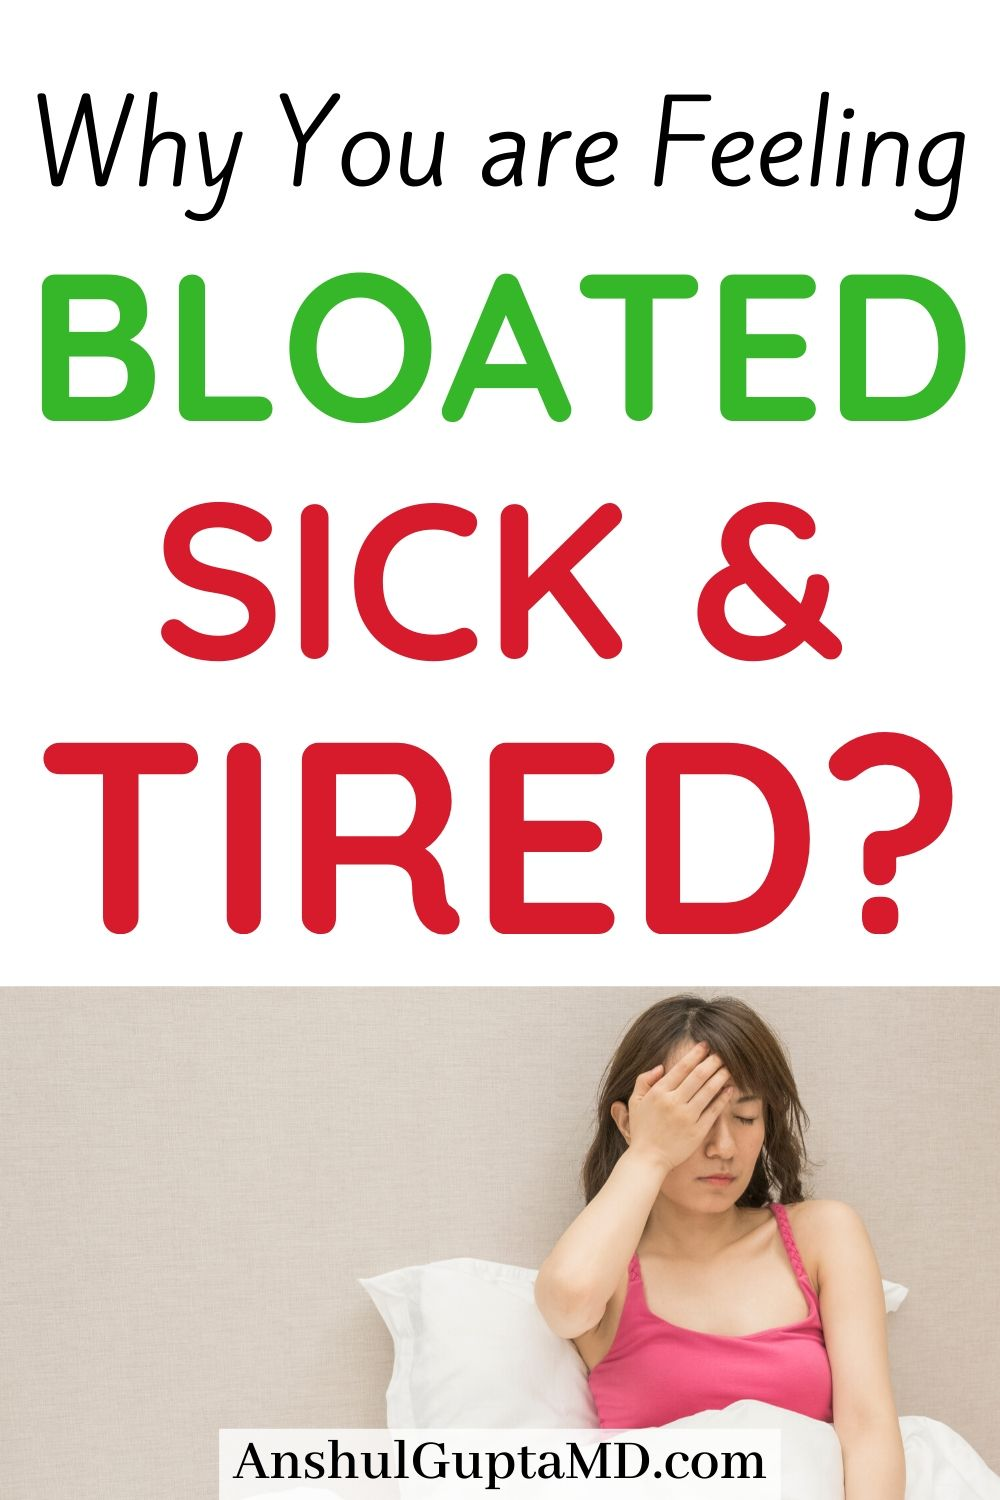 Why Are You Feeling Bloated Sick And Tired In 2020 Bloated Stomach Healthy Happy Life How Are You Feeling